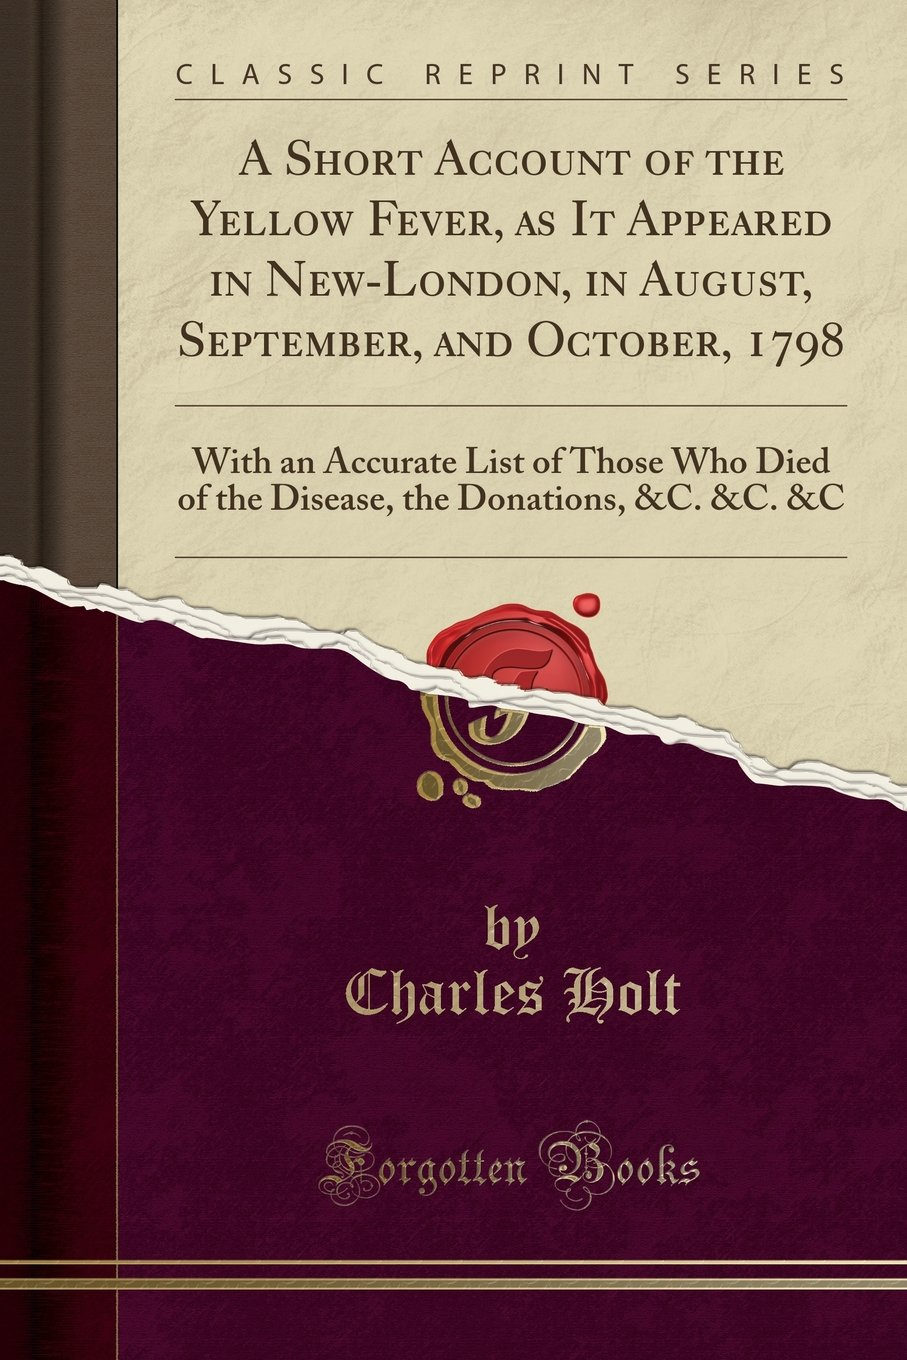 Download A Short Account of the Yellow Fever, as It Appeared in New-London, in August, September, and October, 1798: With an Accurate List of Those Who Died of ... the Donations, &C. &C. &C (Classic Reprint) pdf